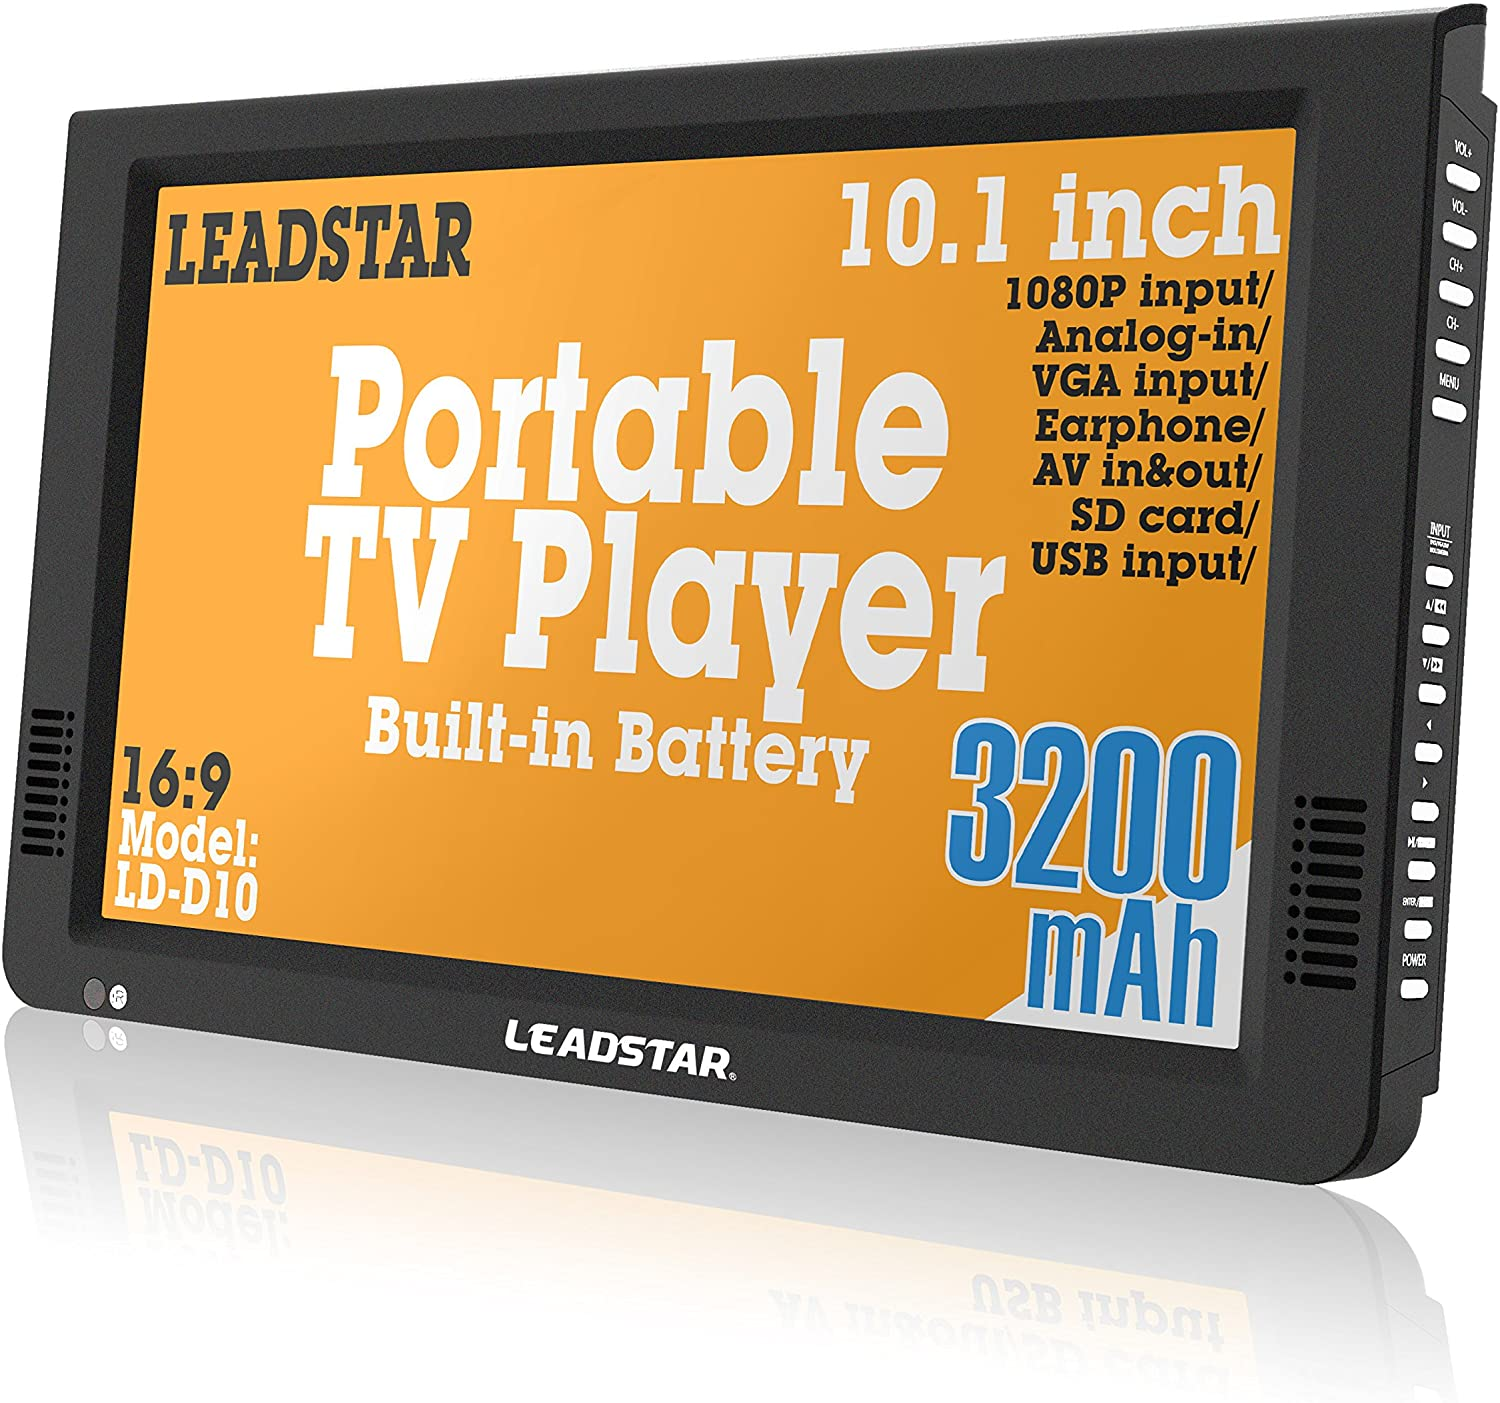 Portable LED TV by LEADSTAR